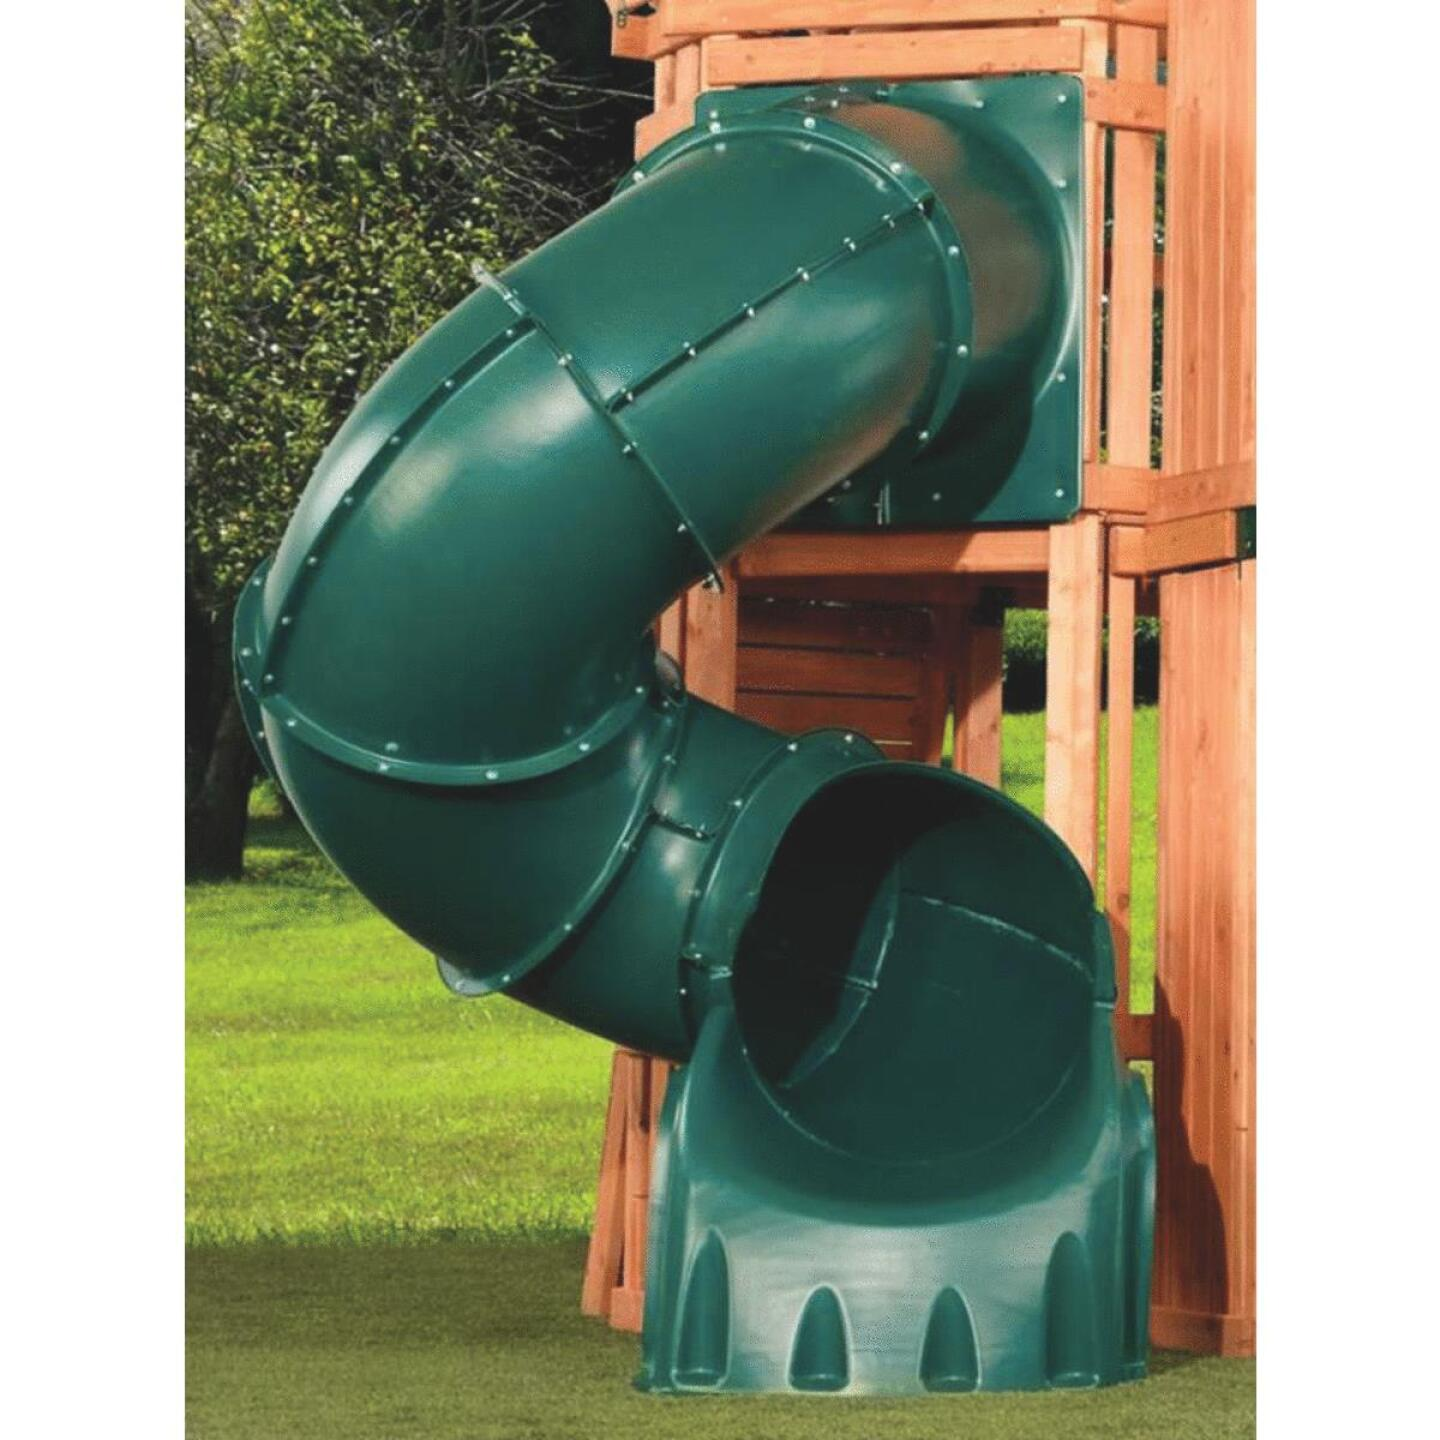 Swing N Slide 5 Ft. L. Green Polyethylene Tube Slide Image 1